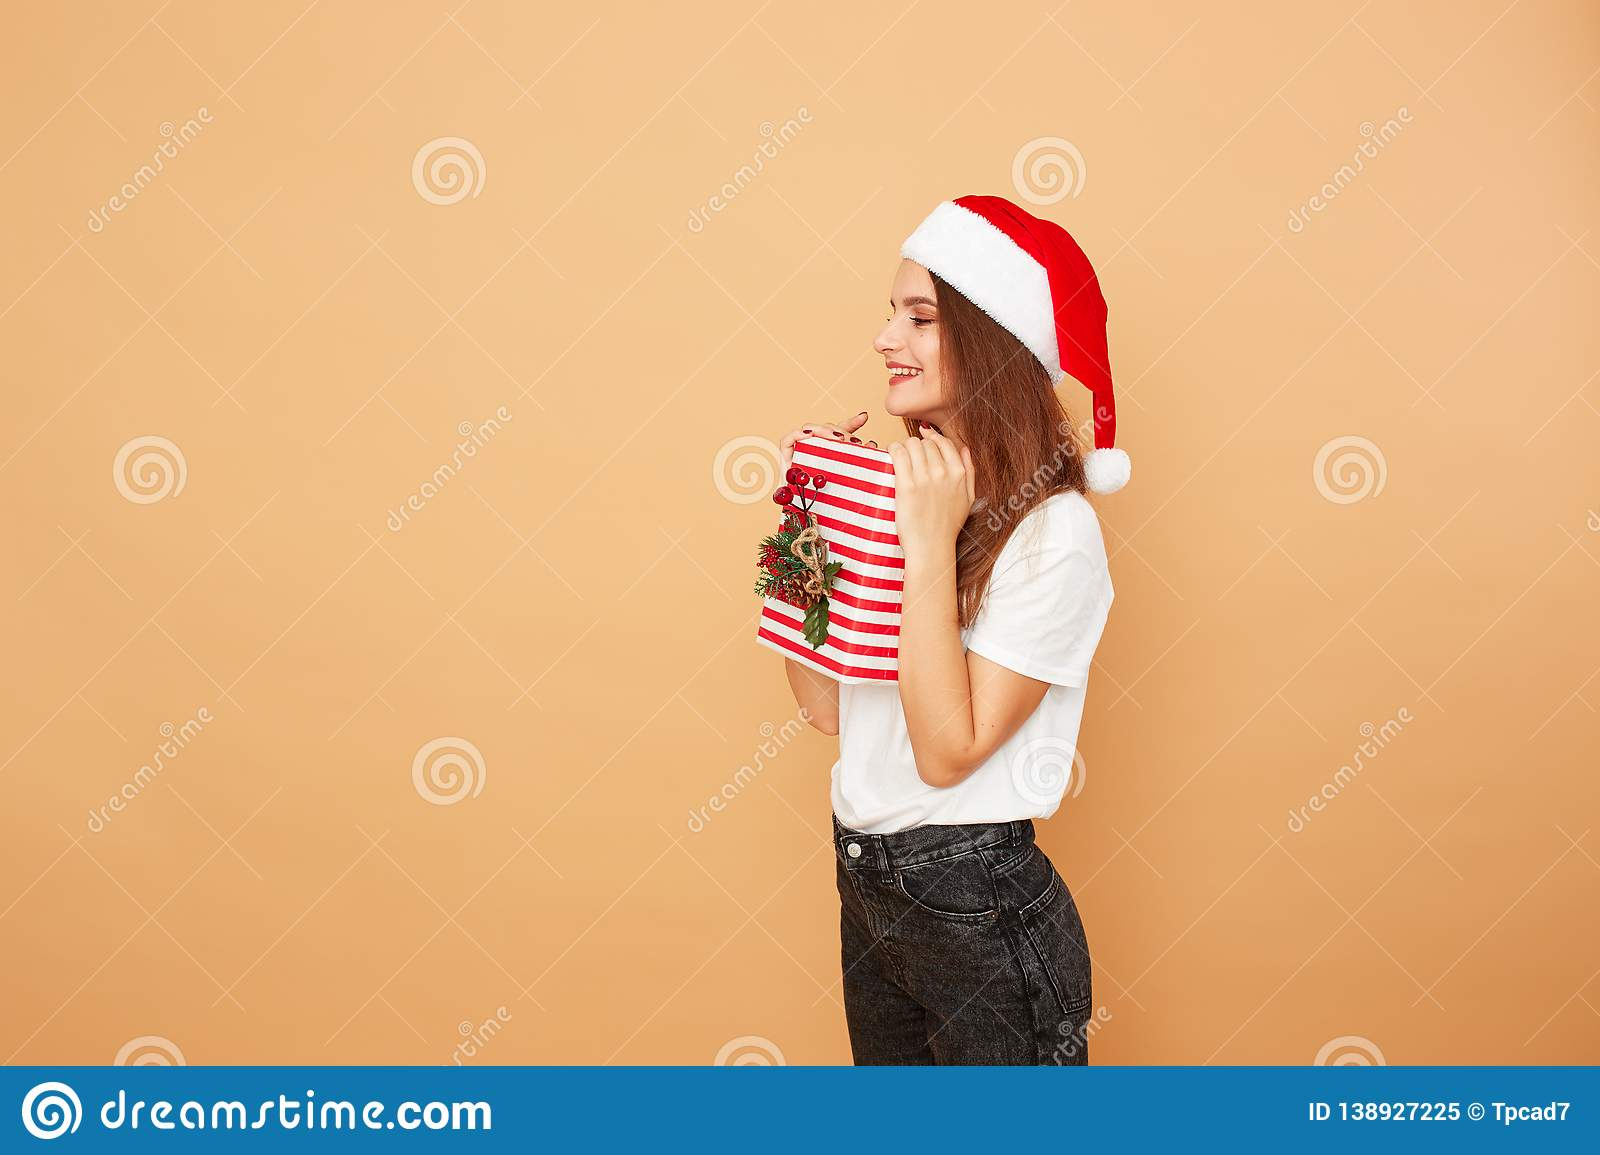 Girl in Santa`s hat dressed in white t-shirt and jeans holds a Christmas gift in her hands on the beige background in